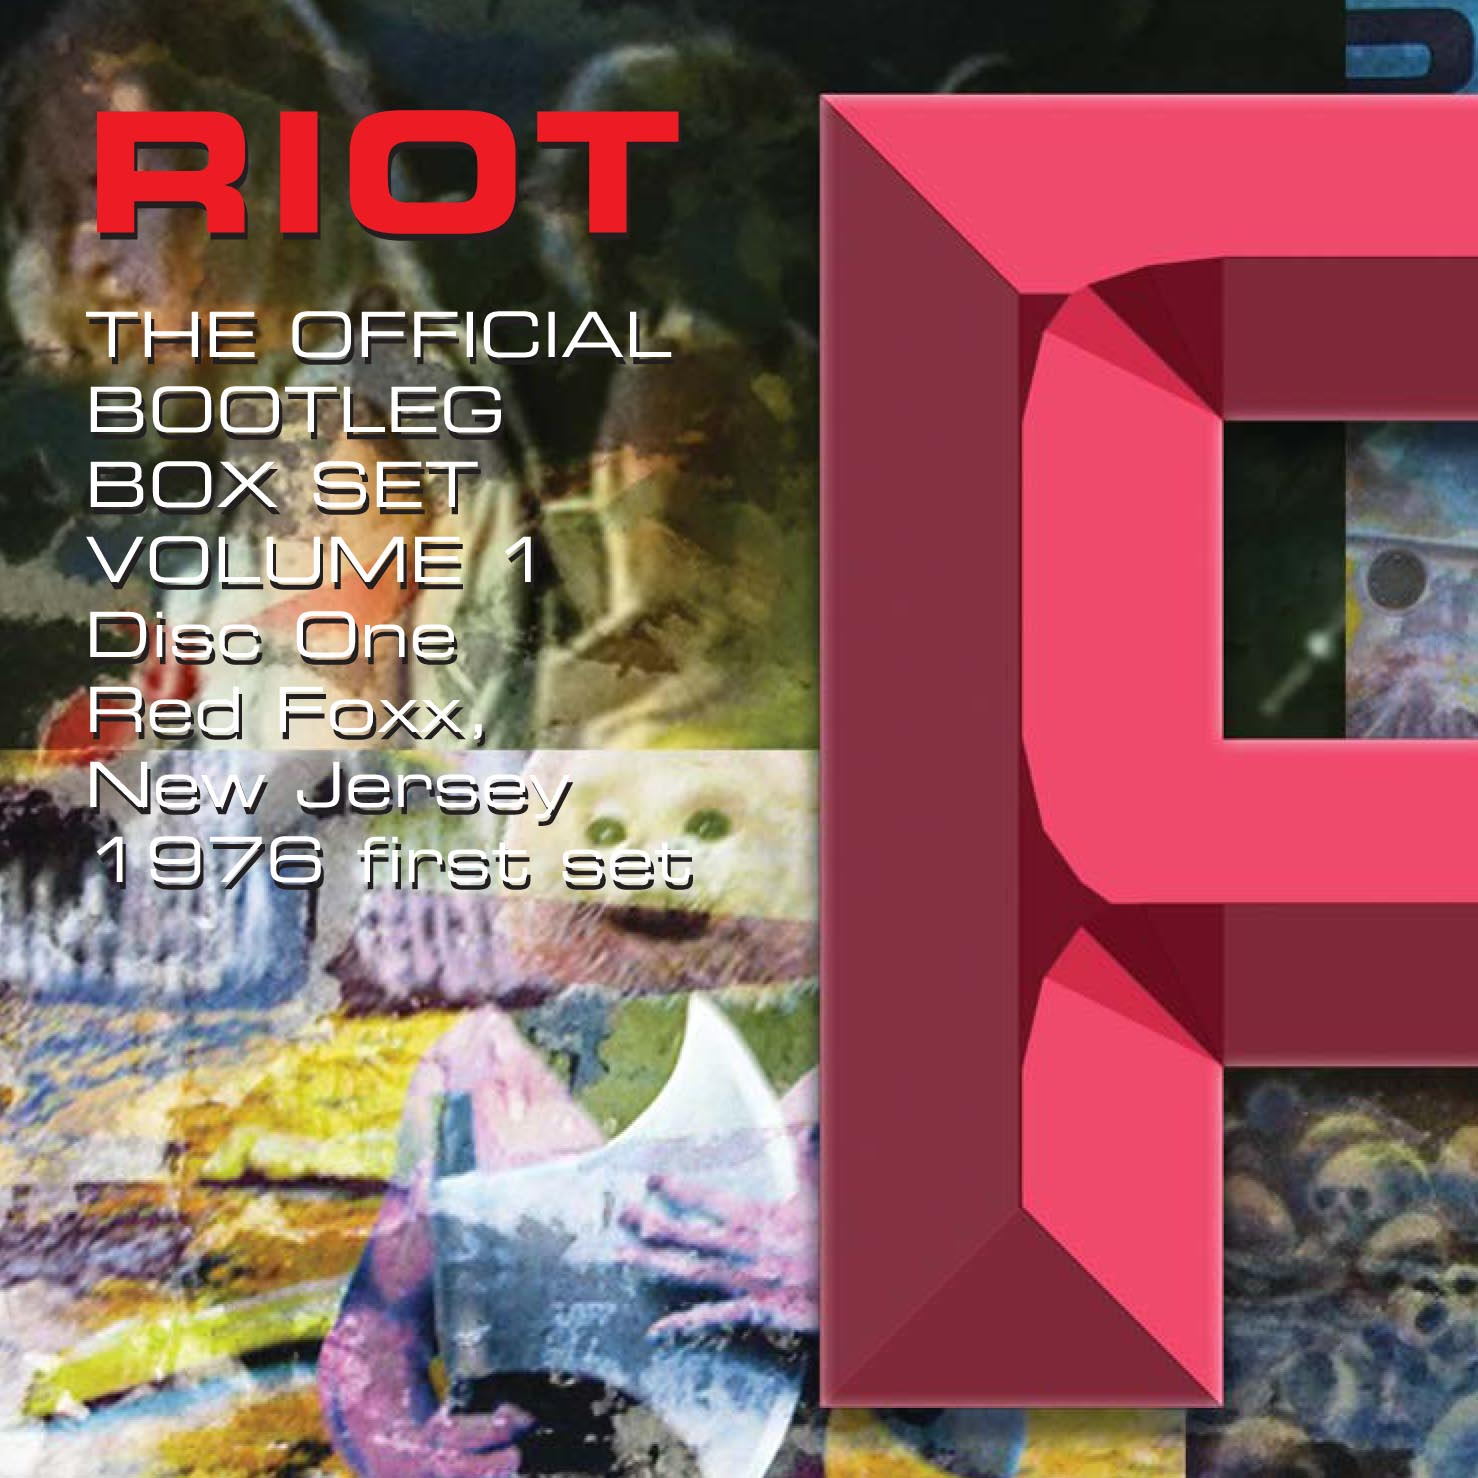 Riot - The Official Bootleg Box Set Volume 1 - 1976-1980: 6CD Box Set